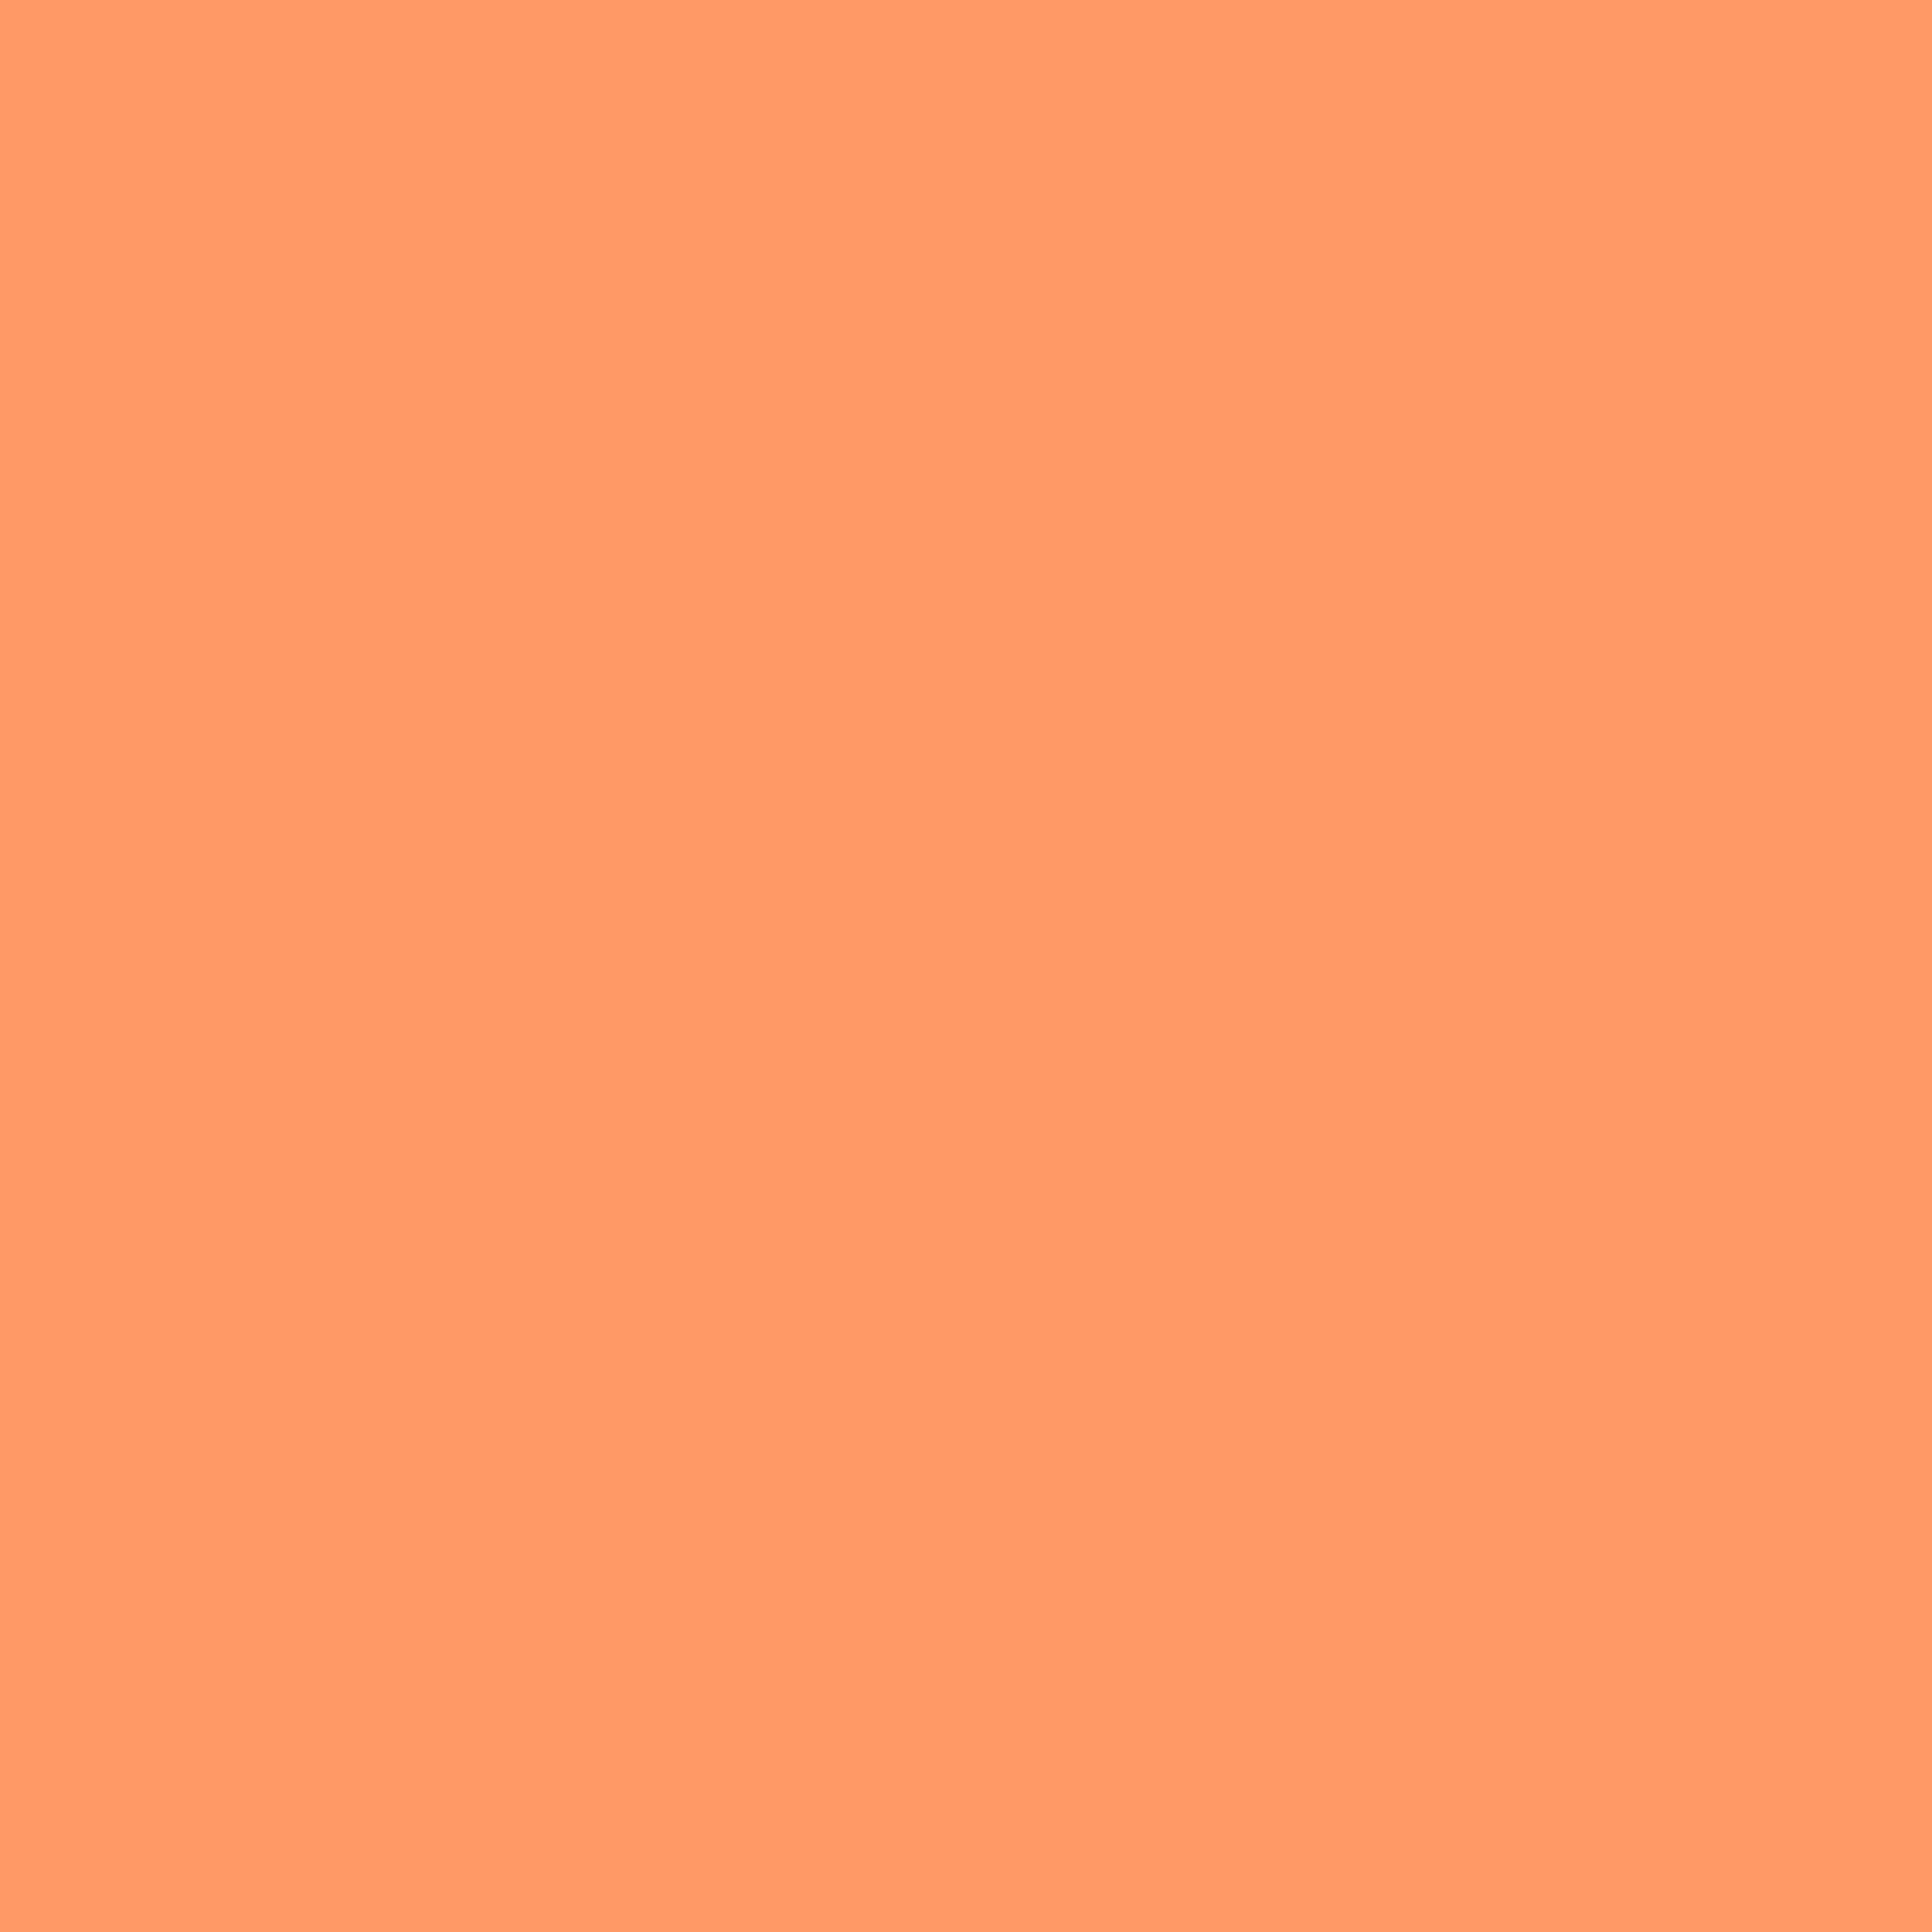 2732x2732 Atomic Tangerine Solid Color Background